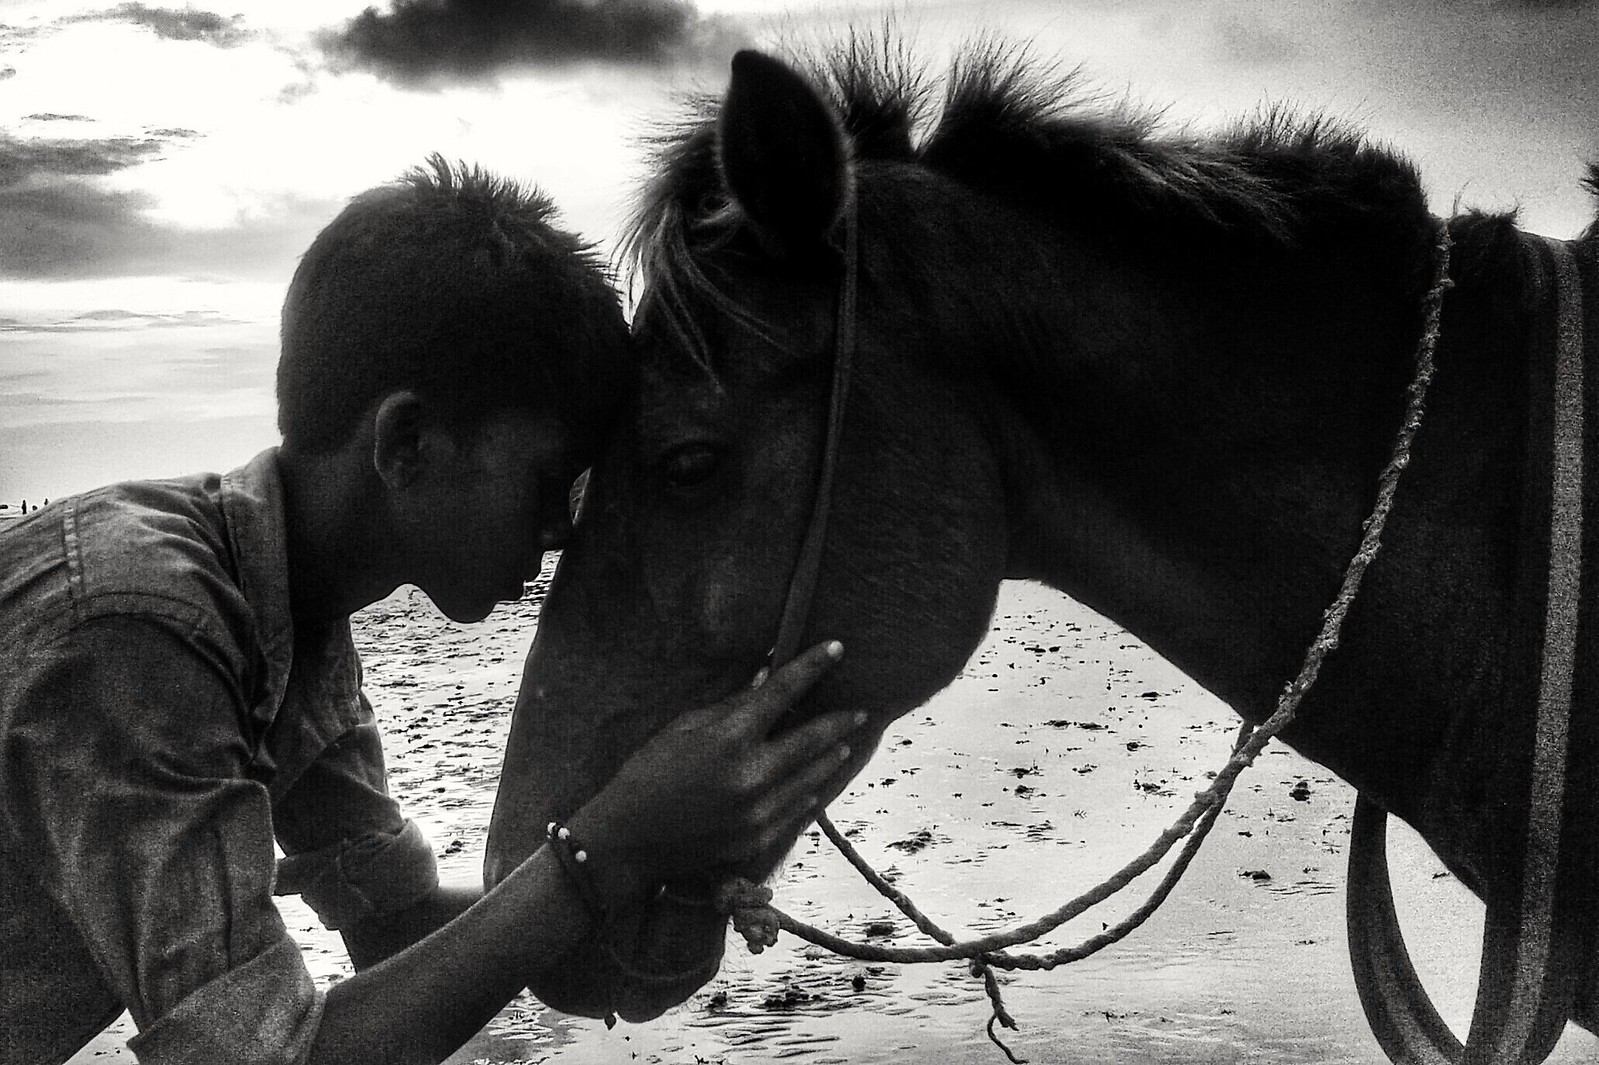 Bahadur (Horse)  & His little master Loves each other... trying to have a good time in the break period | by nayeemsiddiquee